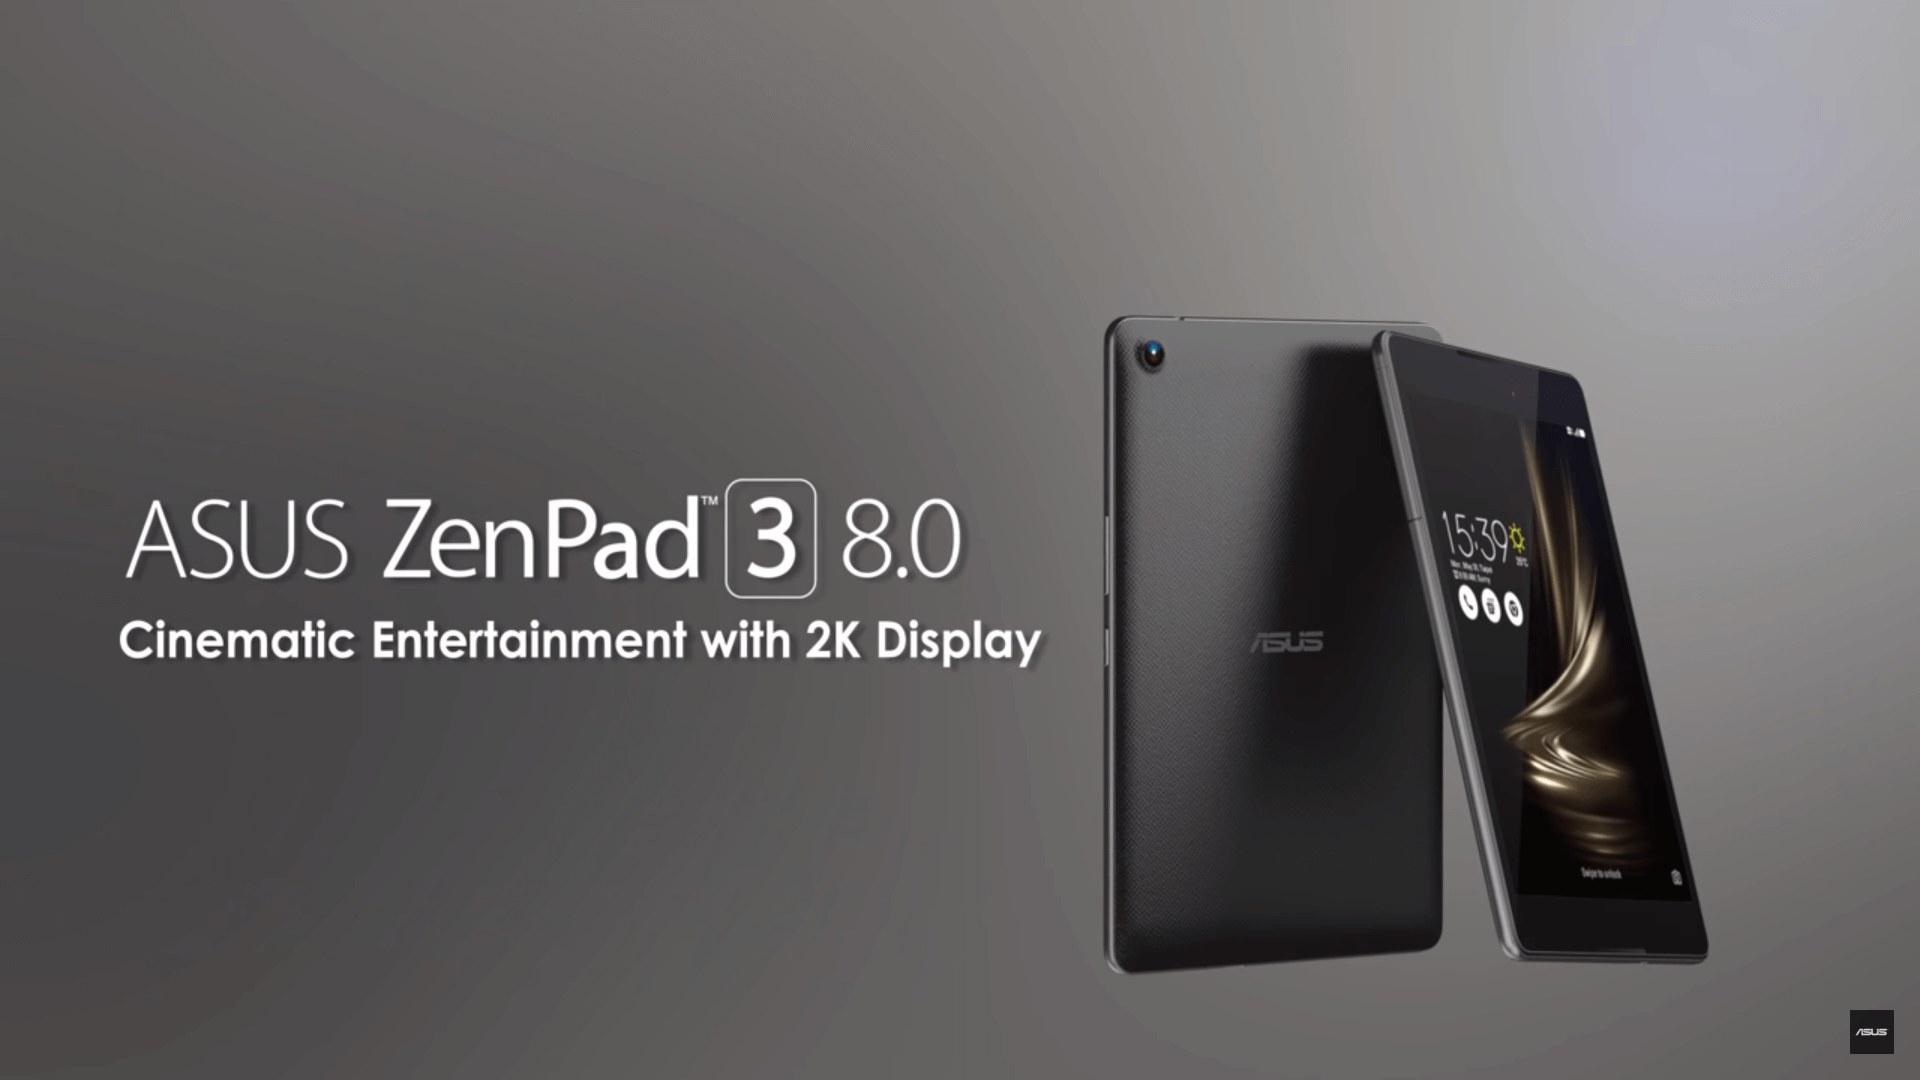 Asus Launches ZenPad 3 8.0 Tablet With Android Marshmallow